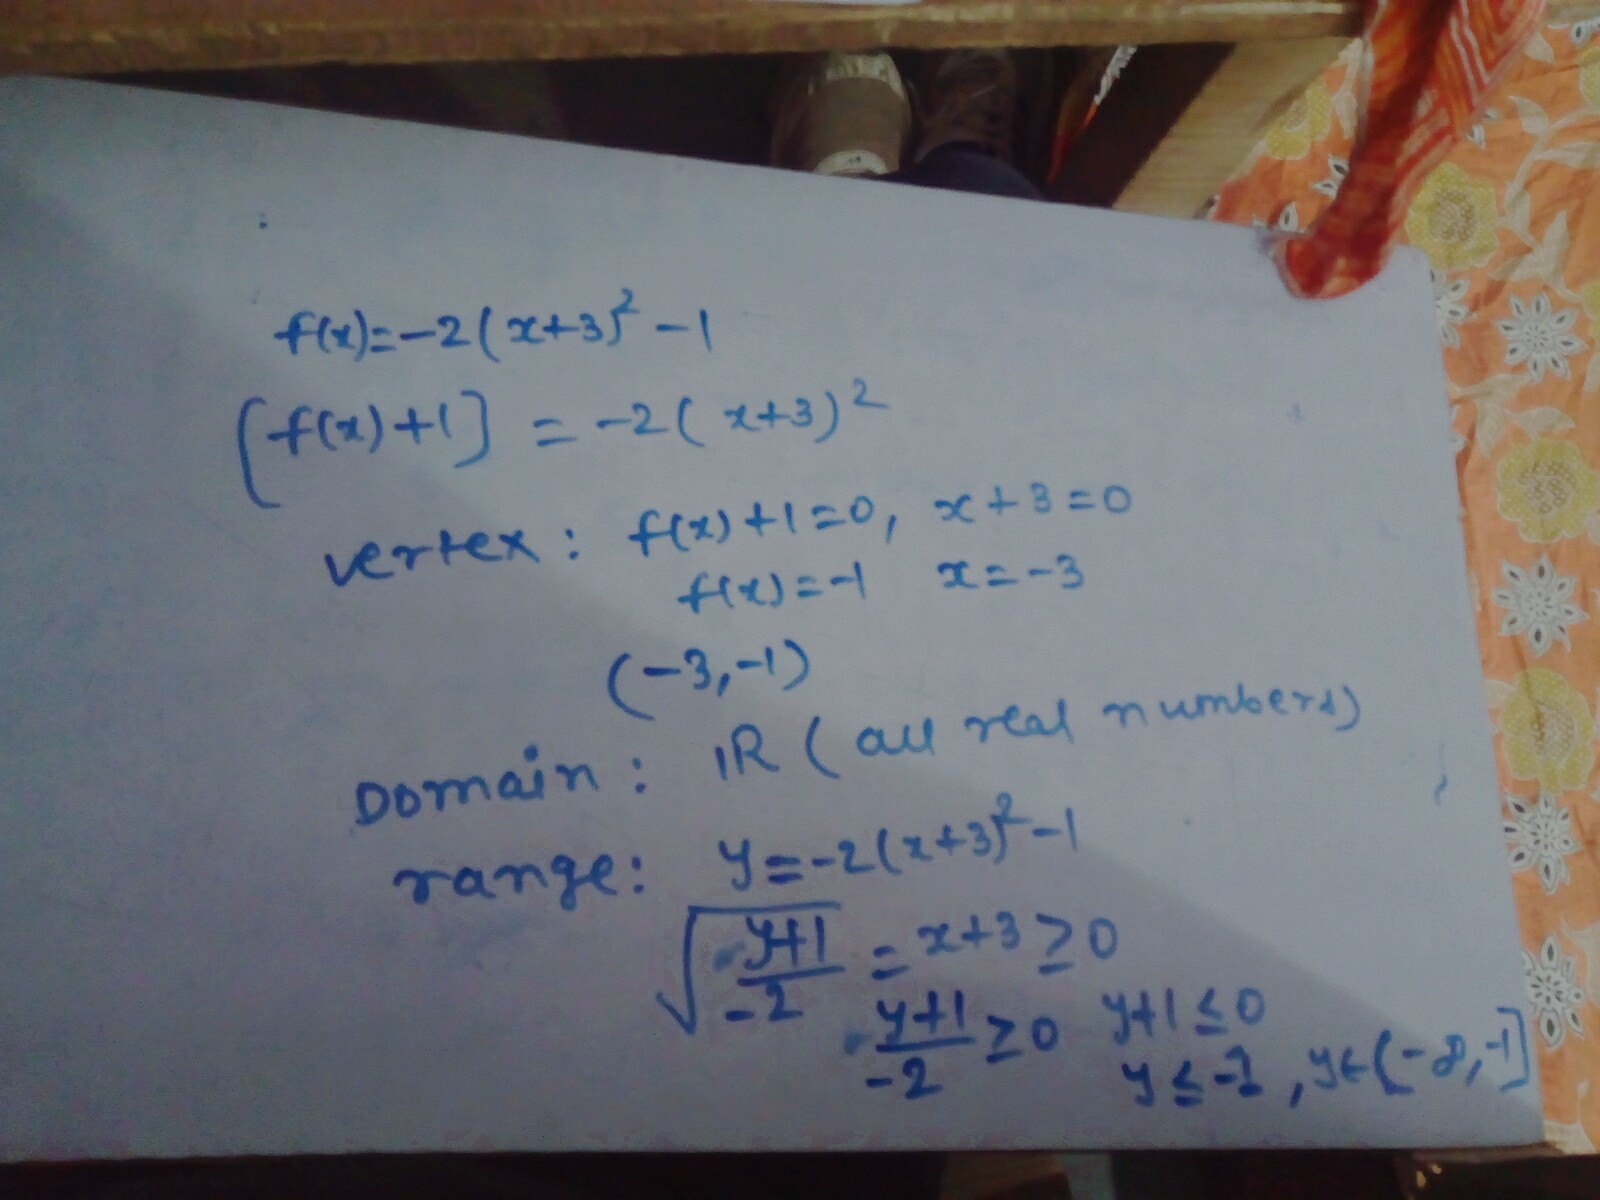 For the function f(x) = -2(x + 3)2 -1, identify the vertex ...